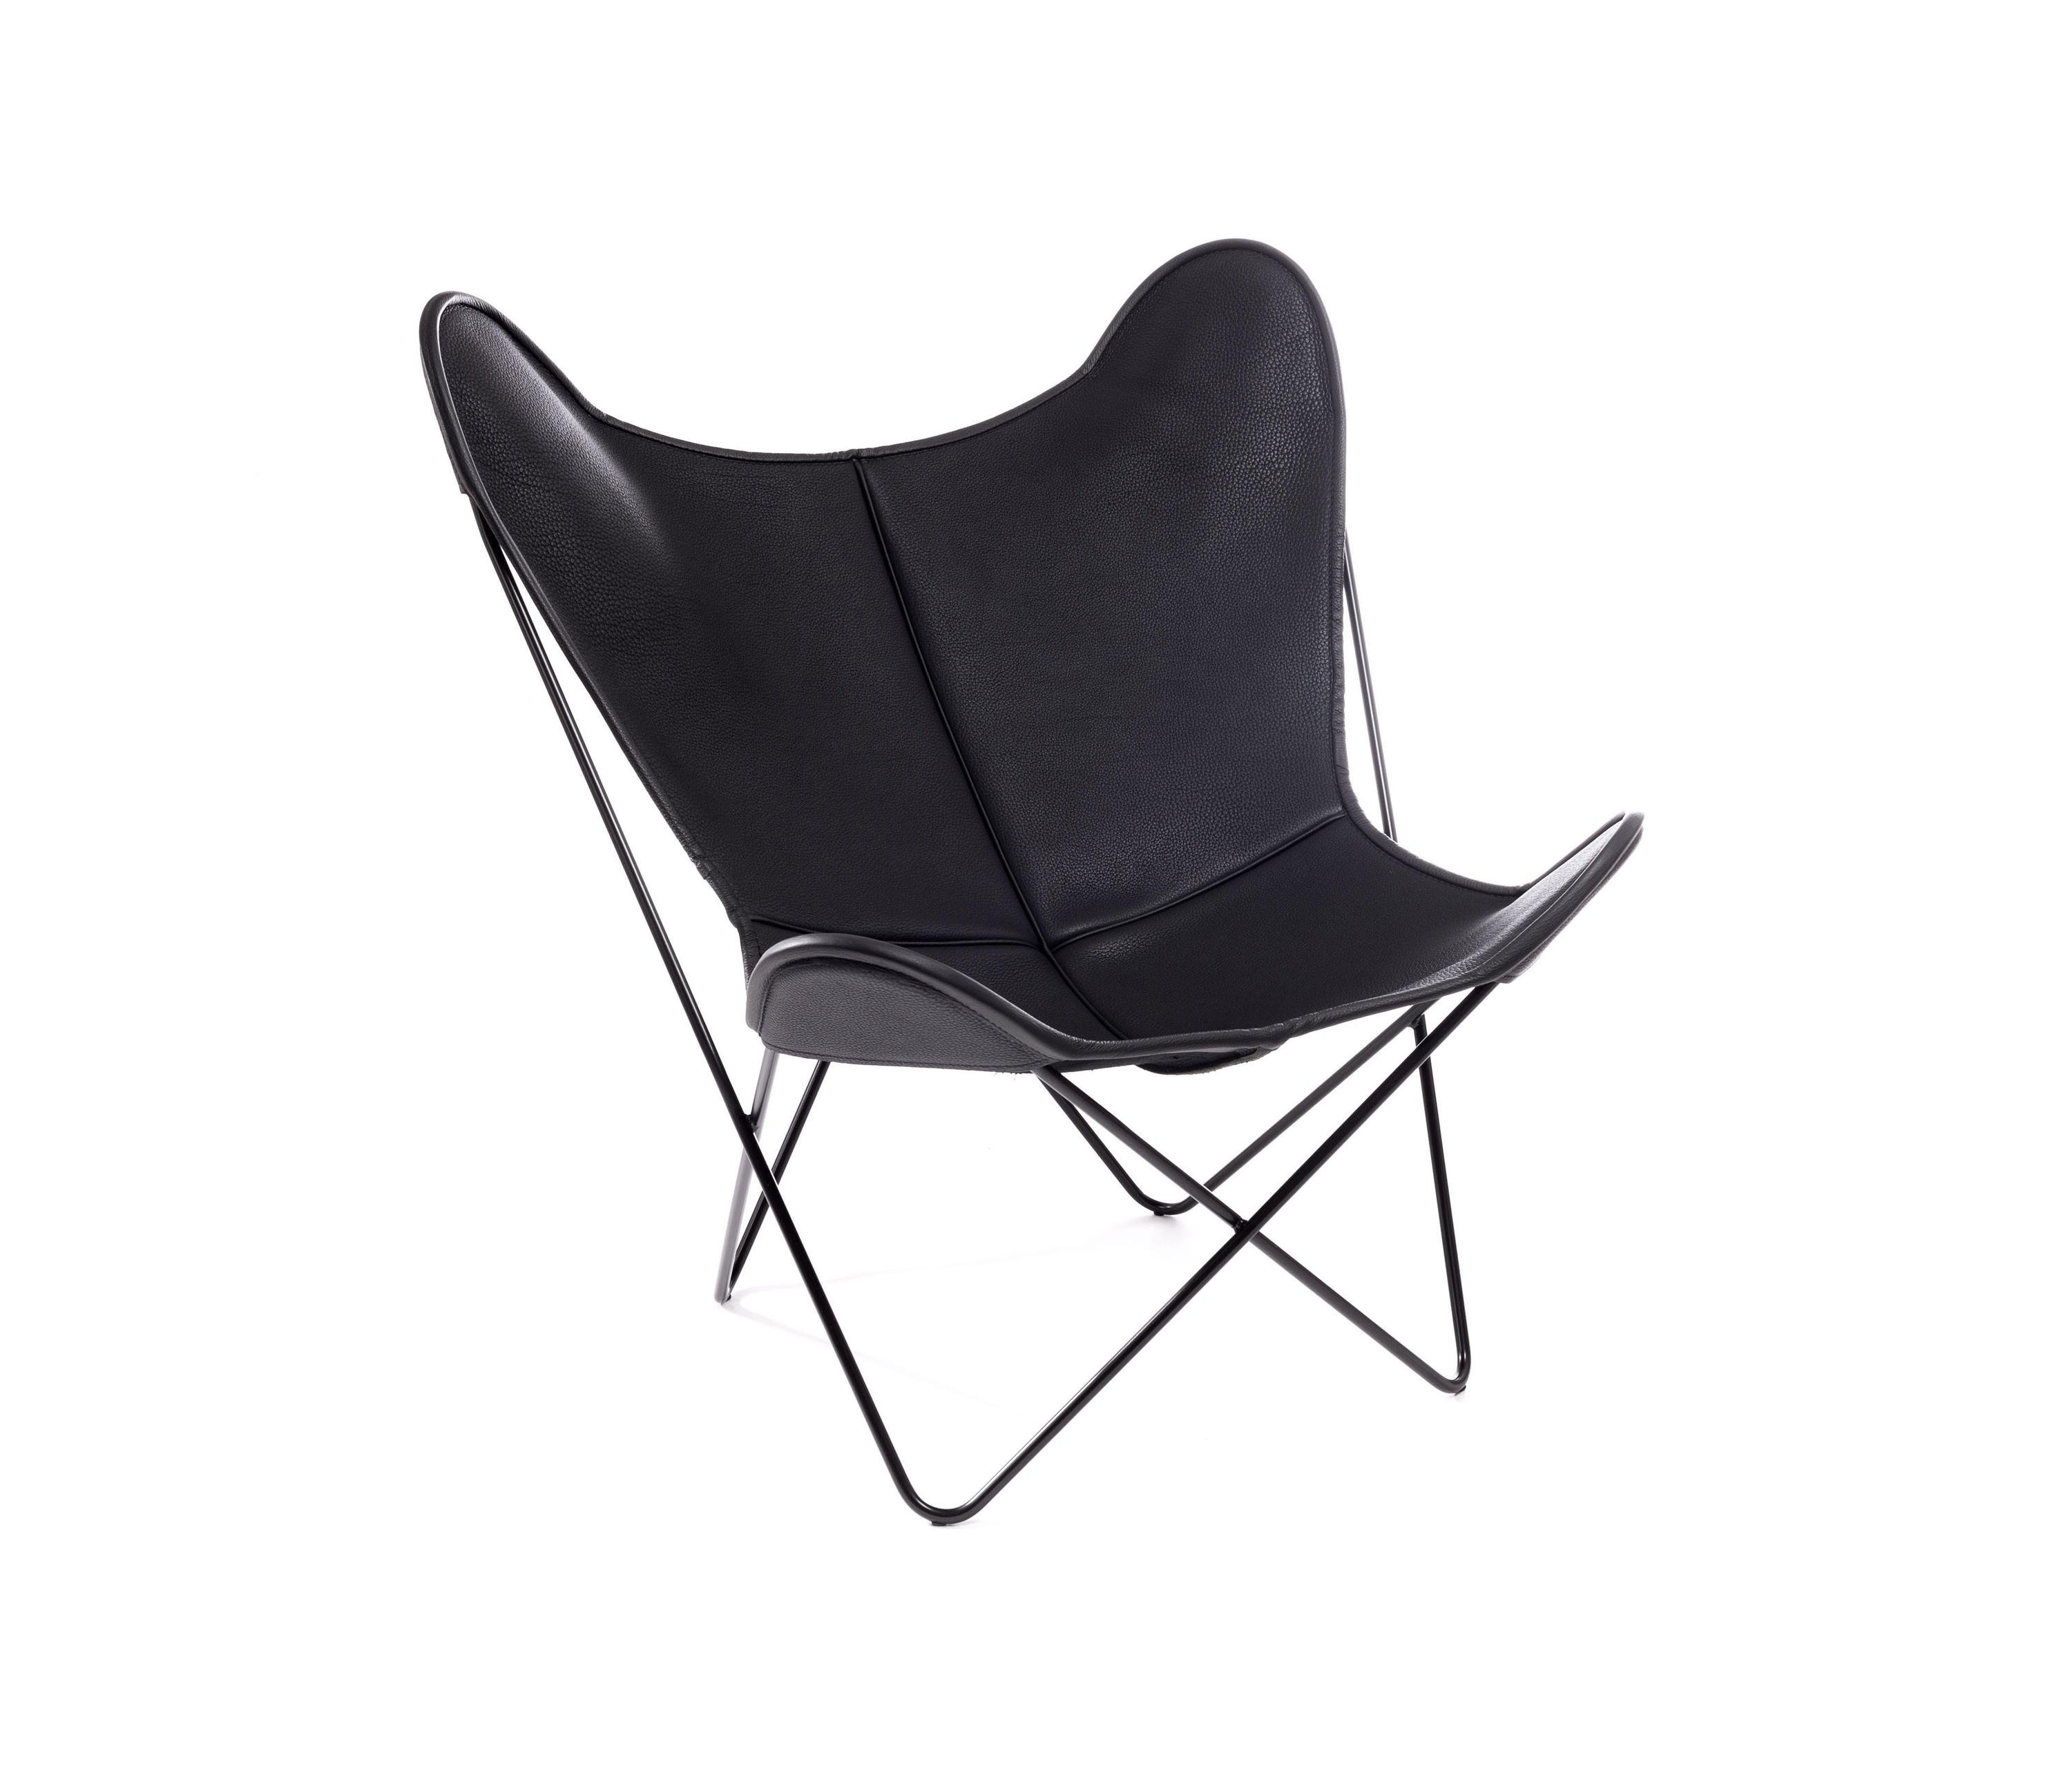 hardoy butterfly chair neck leder schwarz lounge chairs from manufakturplus architonic. Black Bedroom Furniture Sets. Home Design Ideas